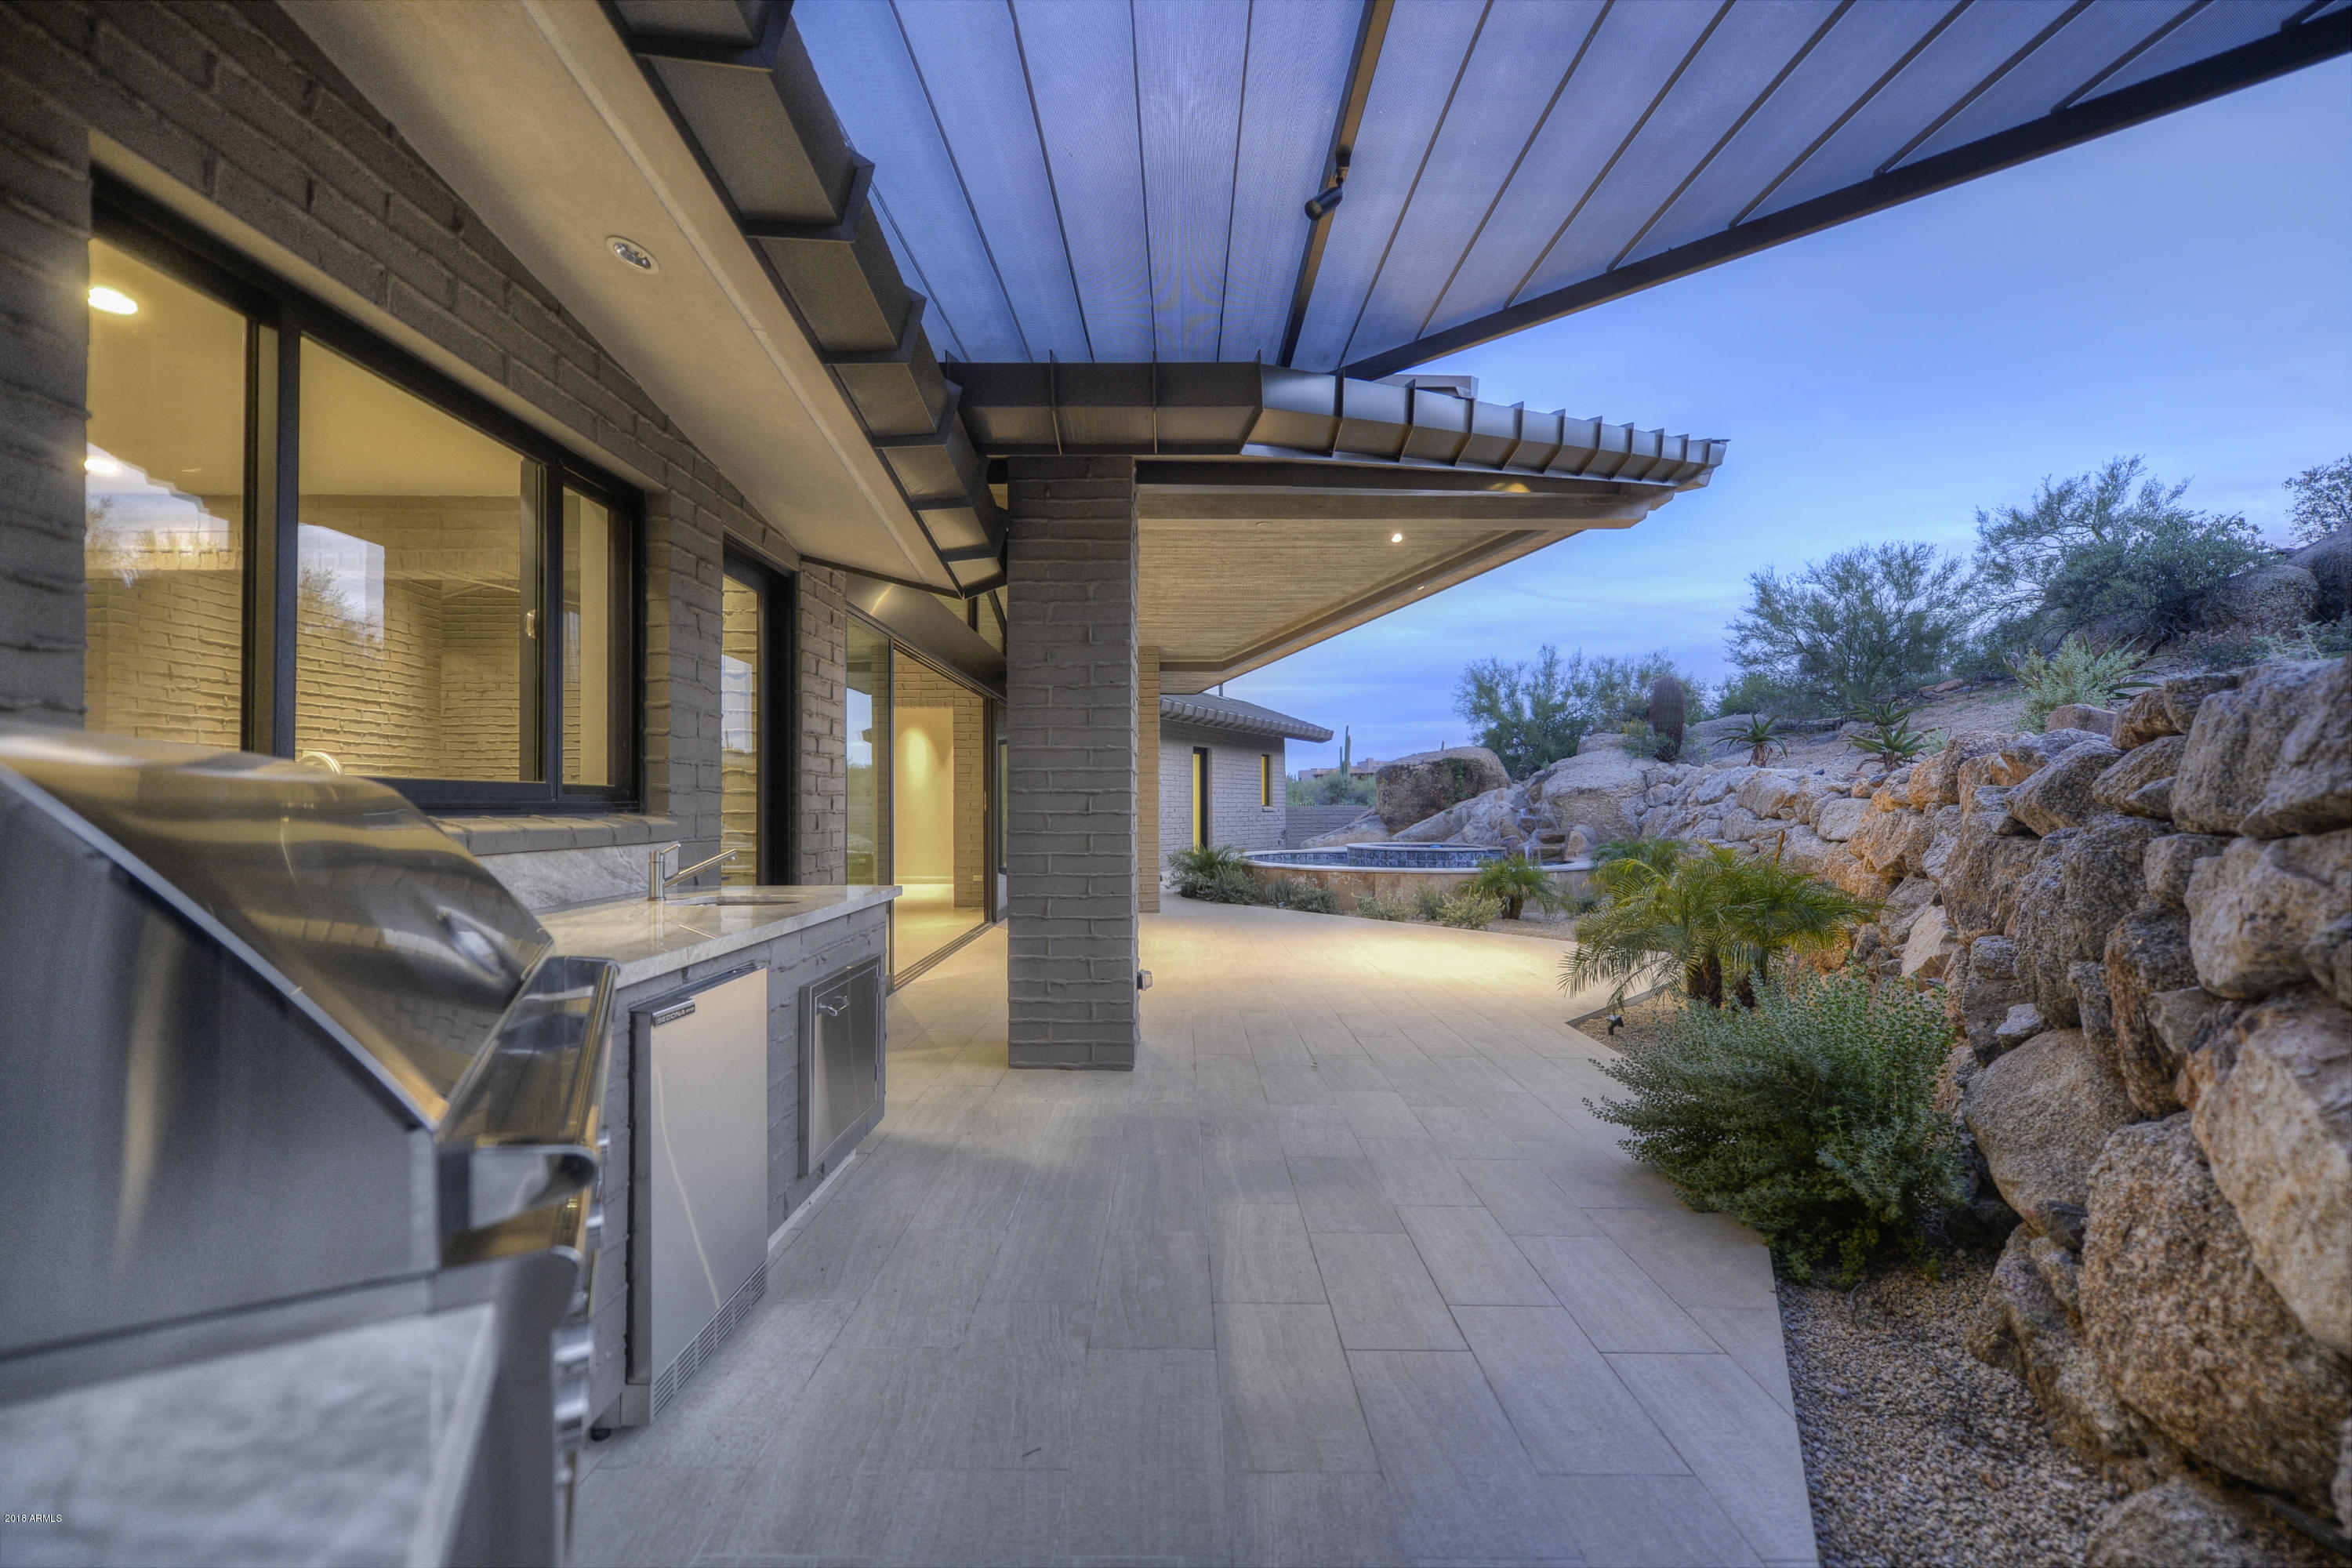 MLS 5843318 37251 N Nighthawk Way, Carefree, AZ 85377 Carefree AZ Luxury